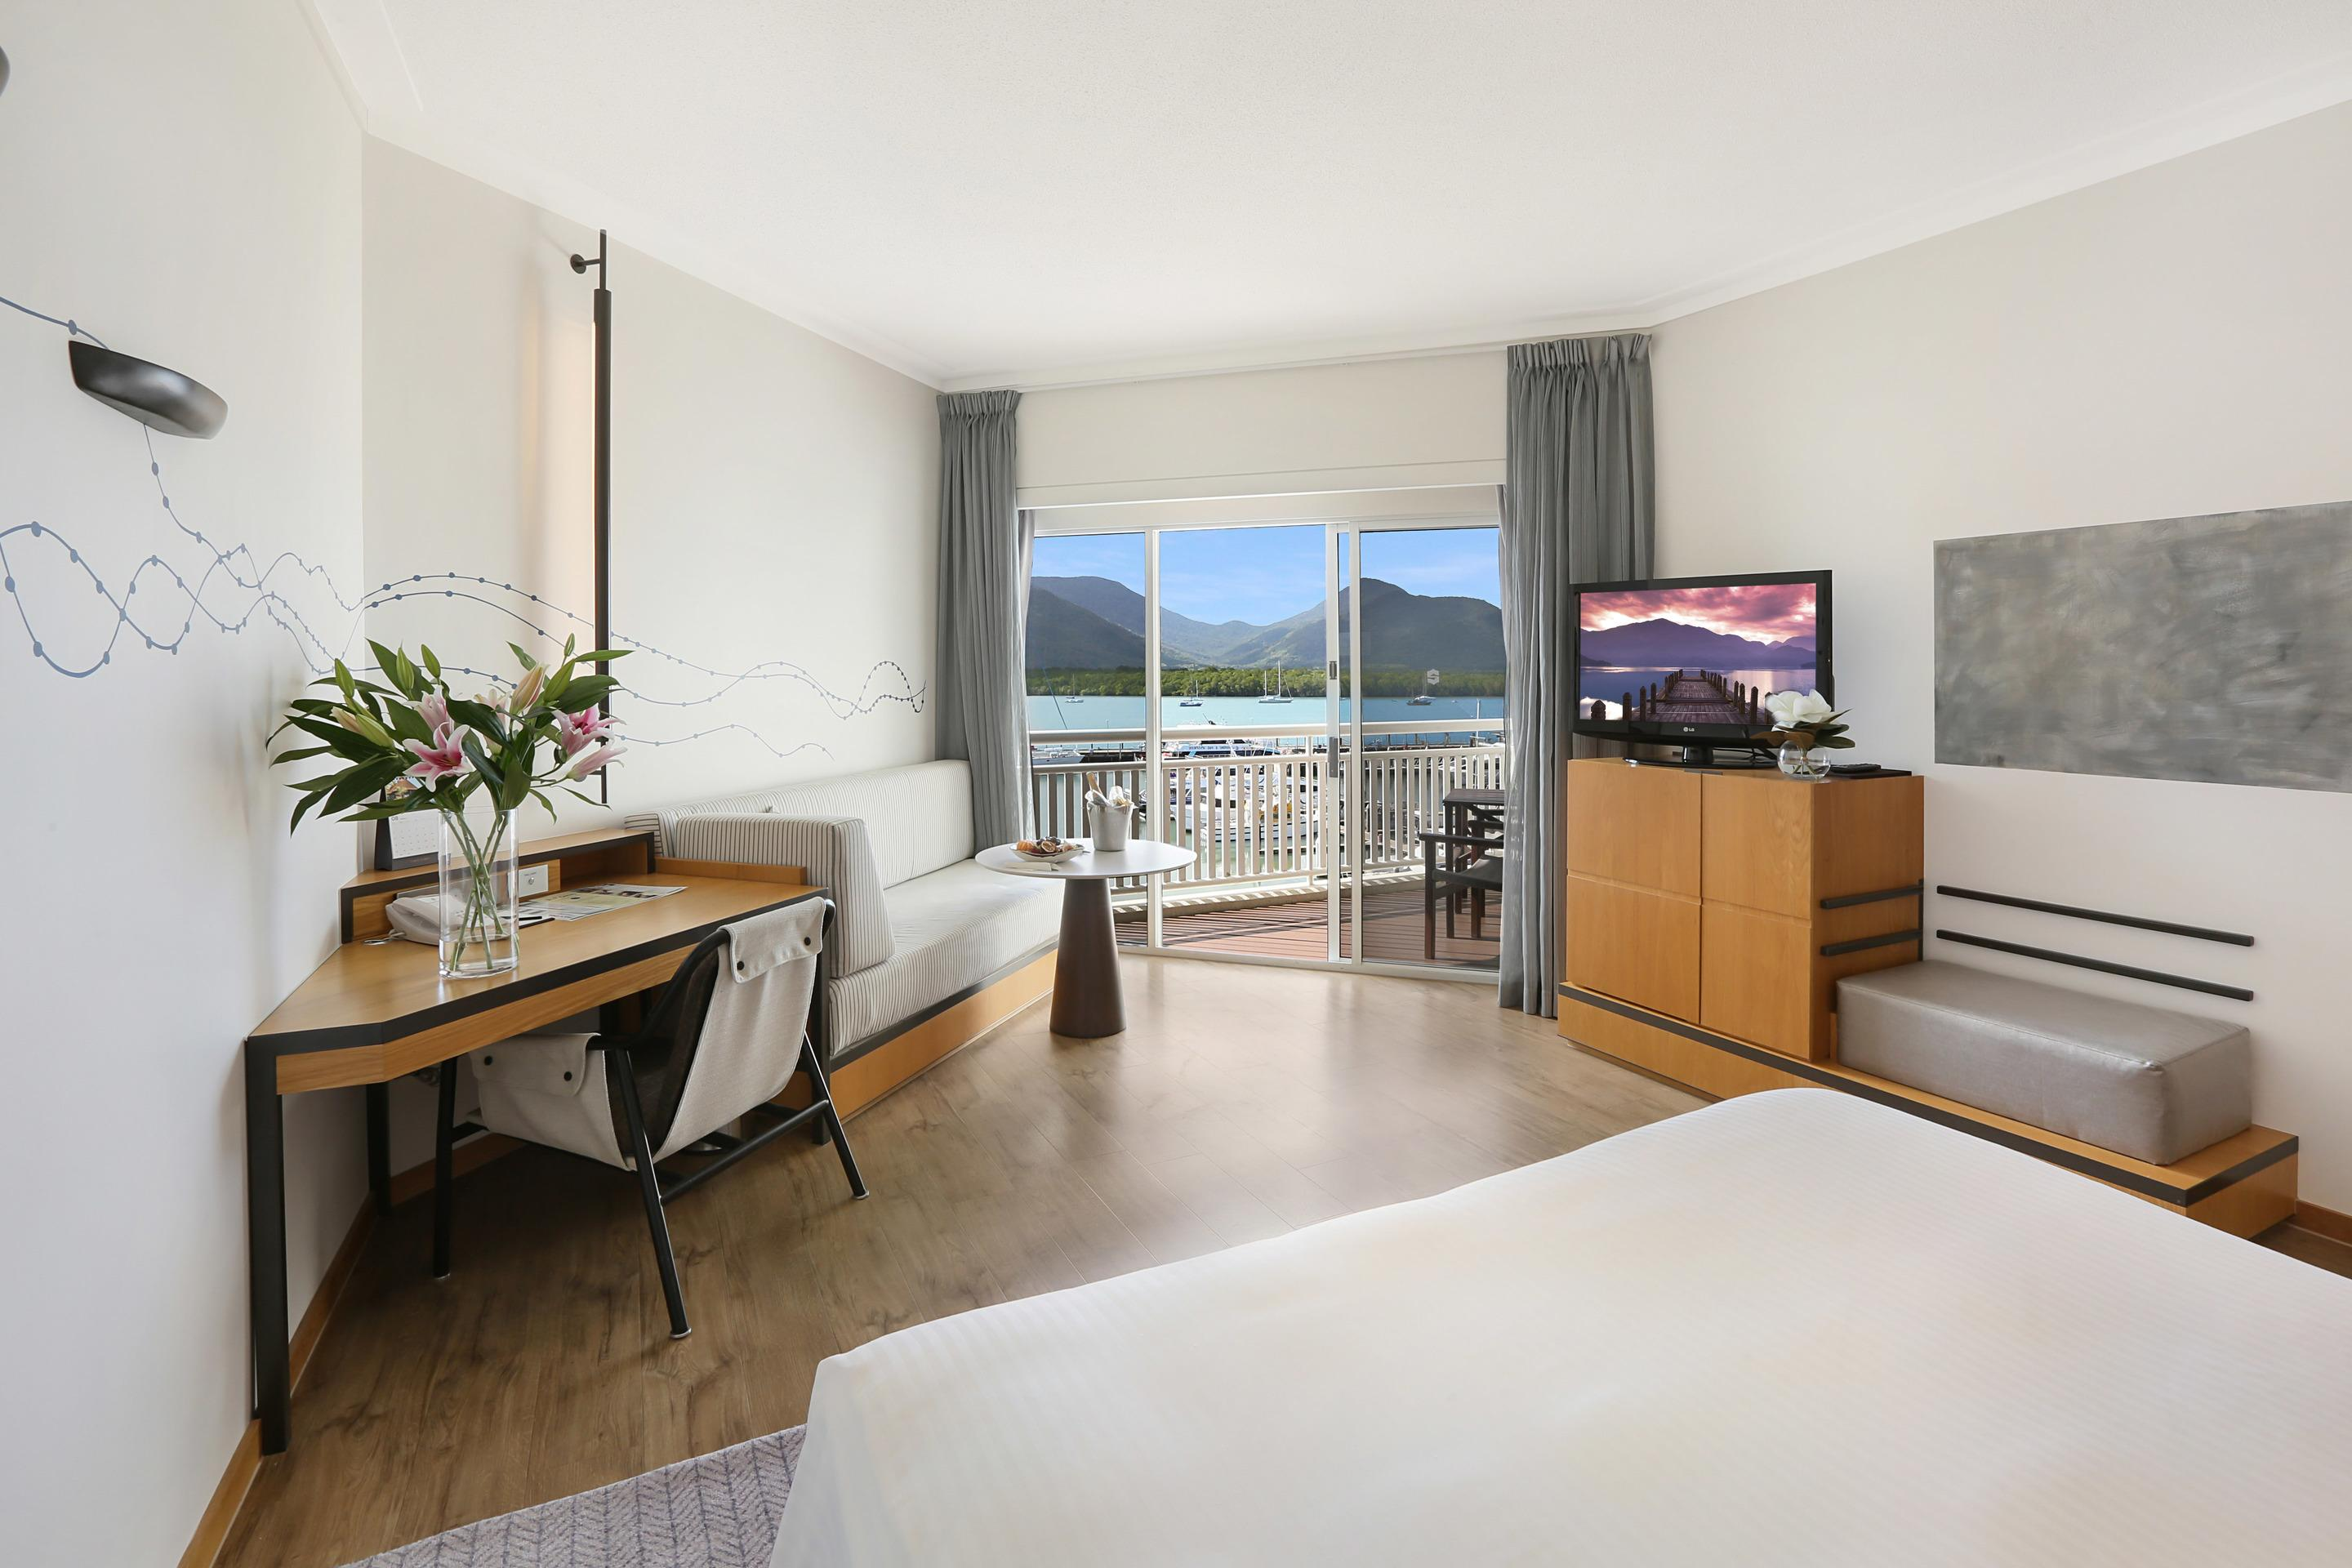 Experience the Ultimate 5-Star Luxury Getaway at the Shangri-La Hotel, The Marina, Cairns